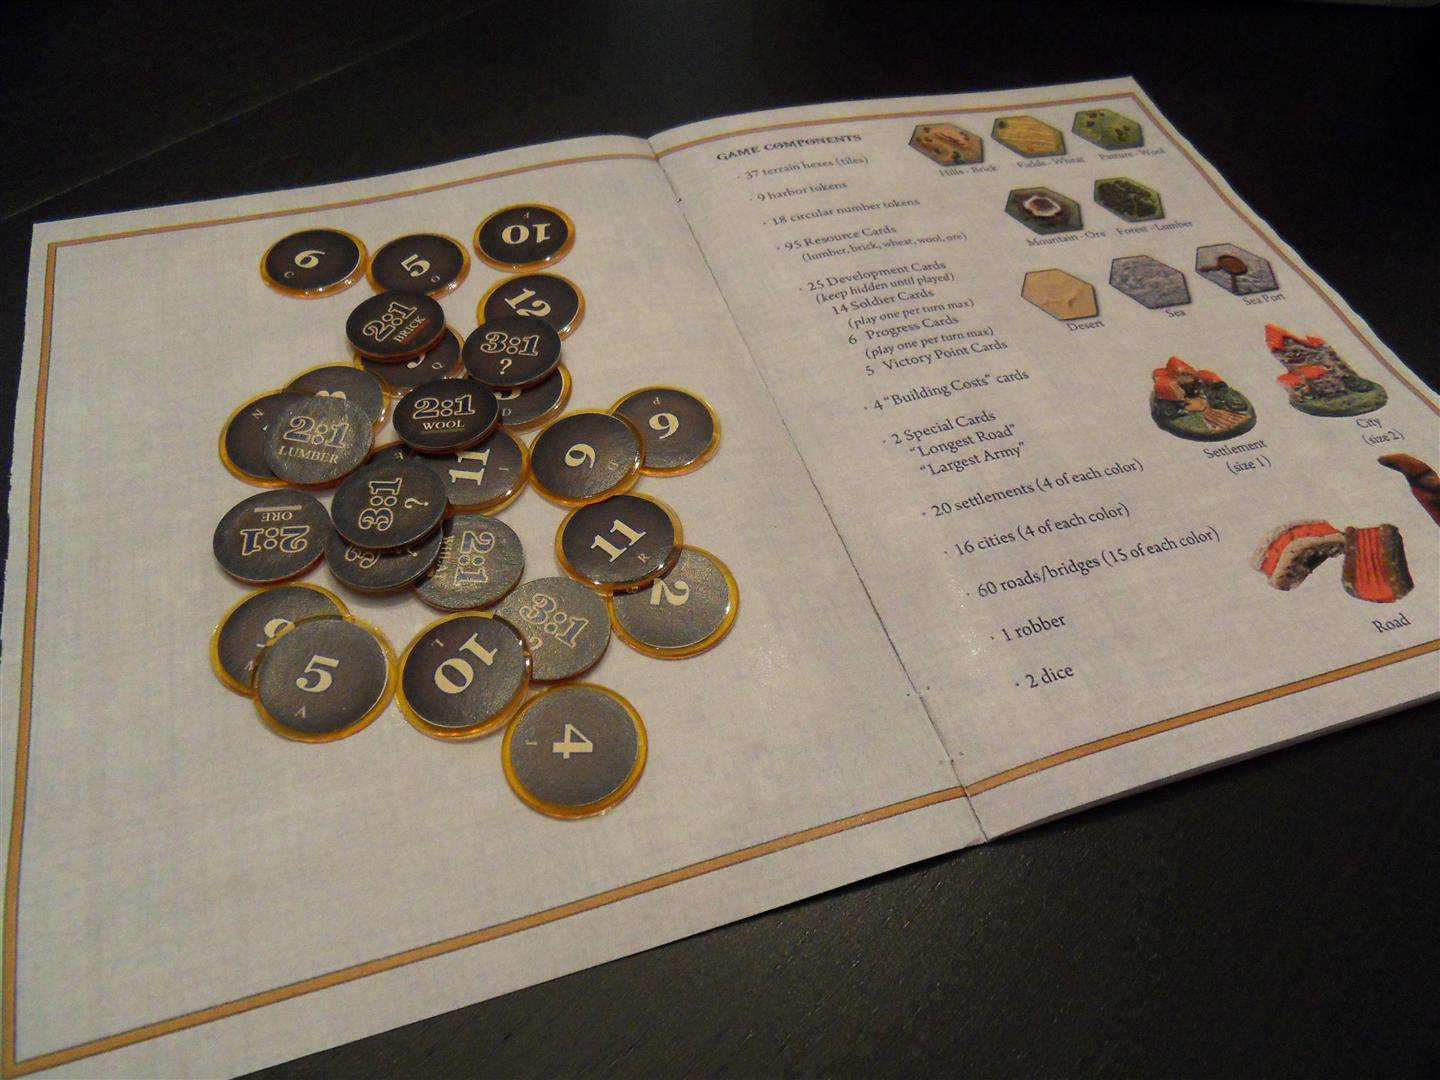 Gregory_D_Settlers_of_Catan_board_game_008.jpg